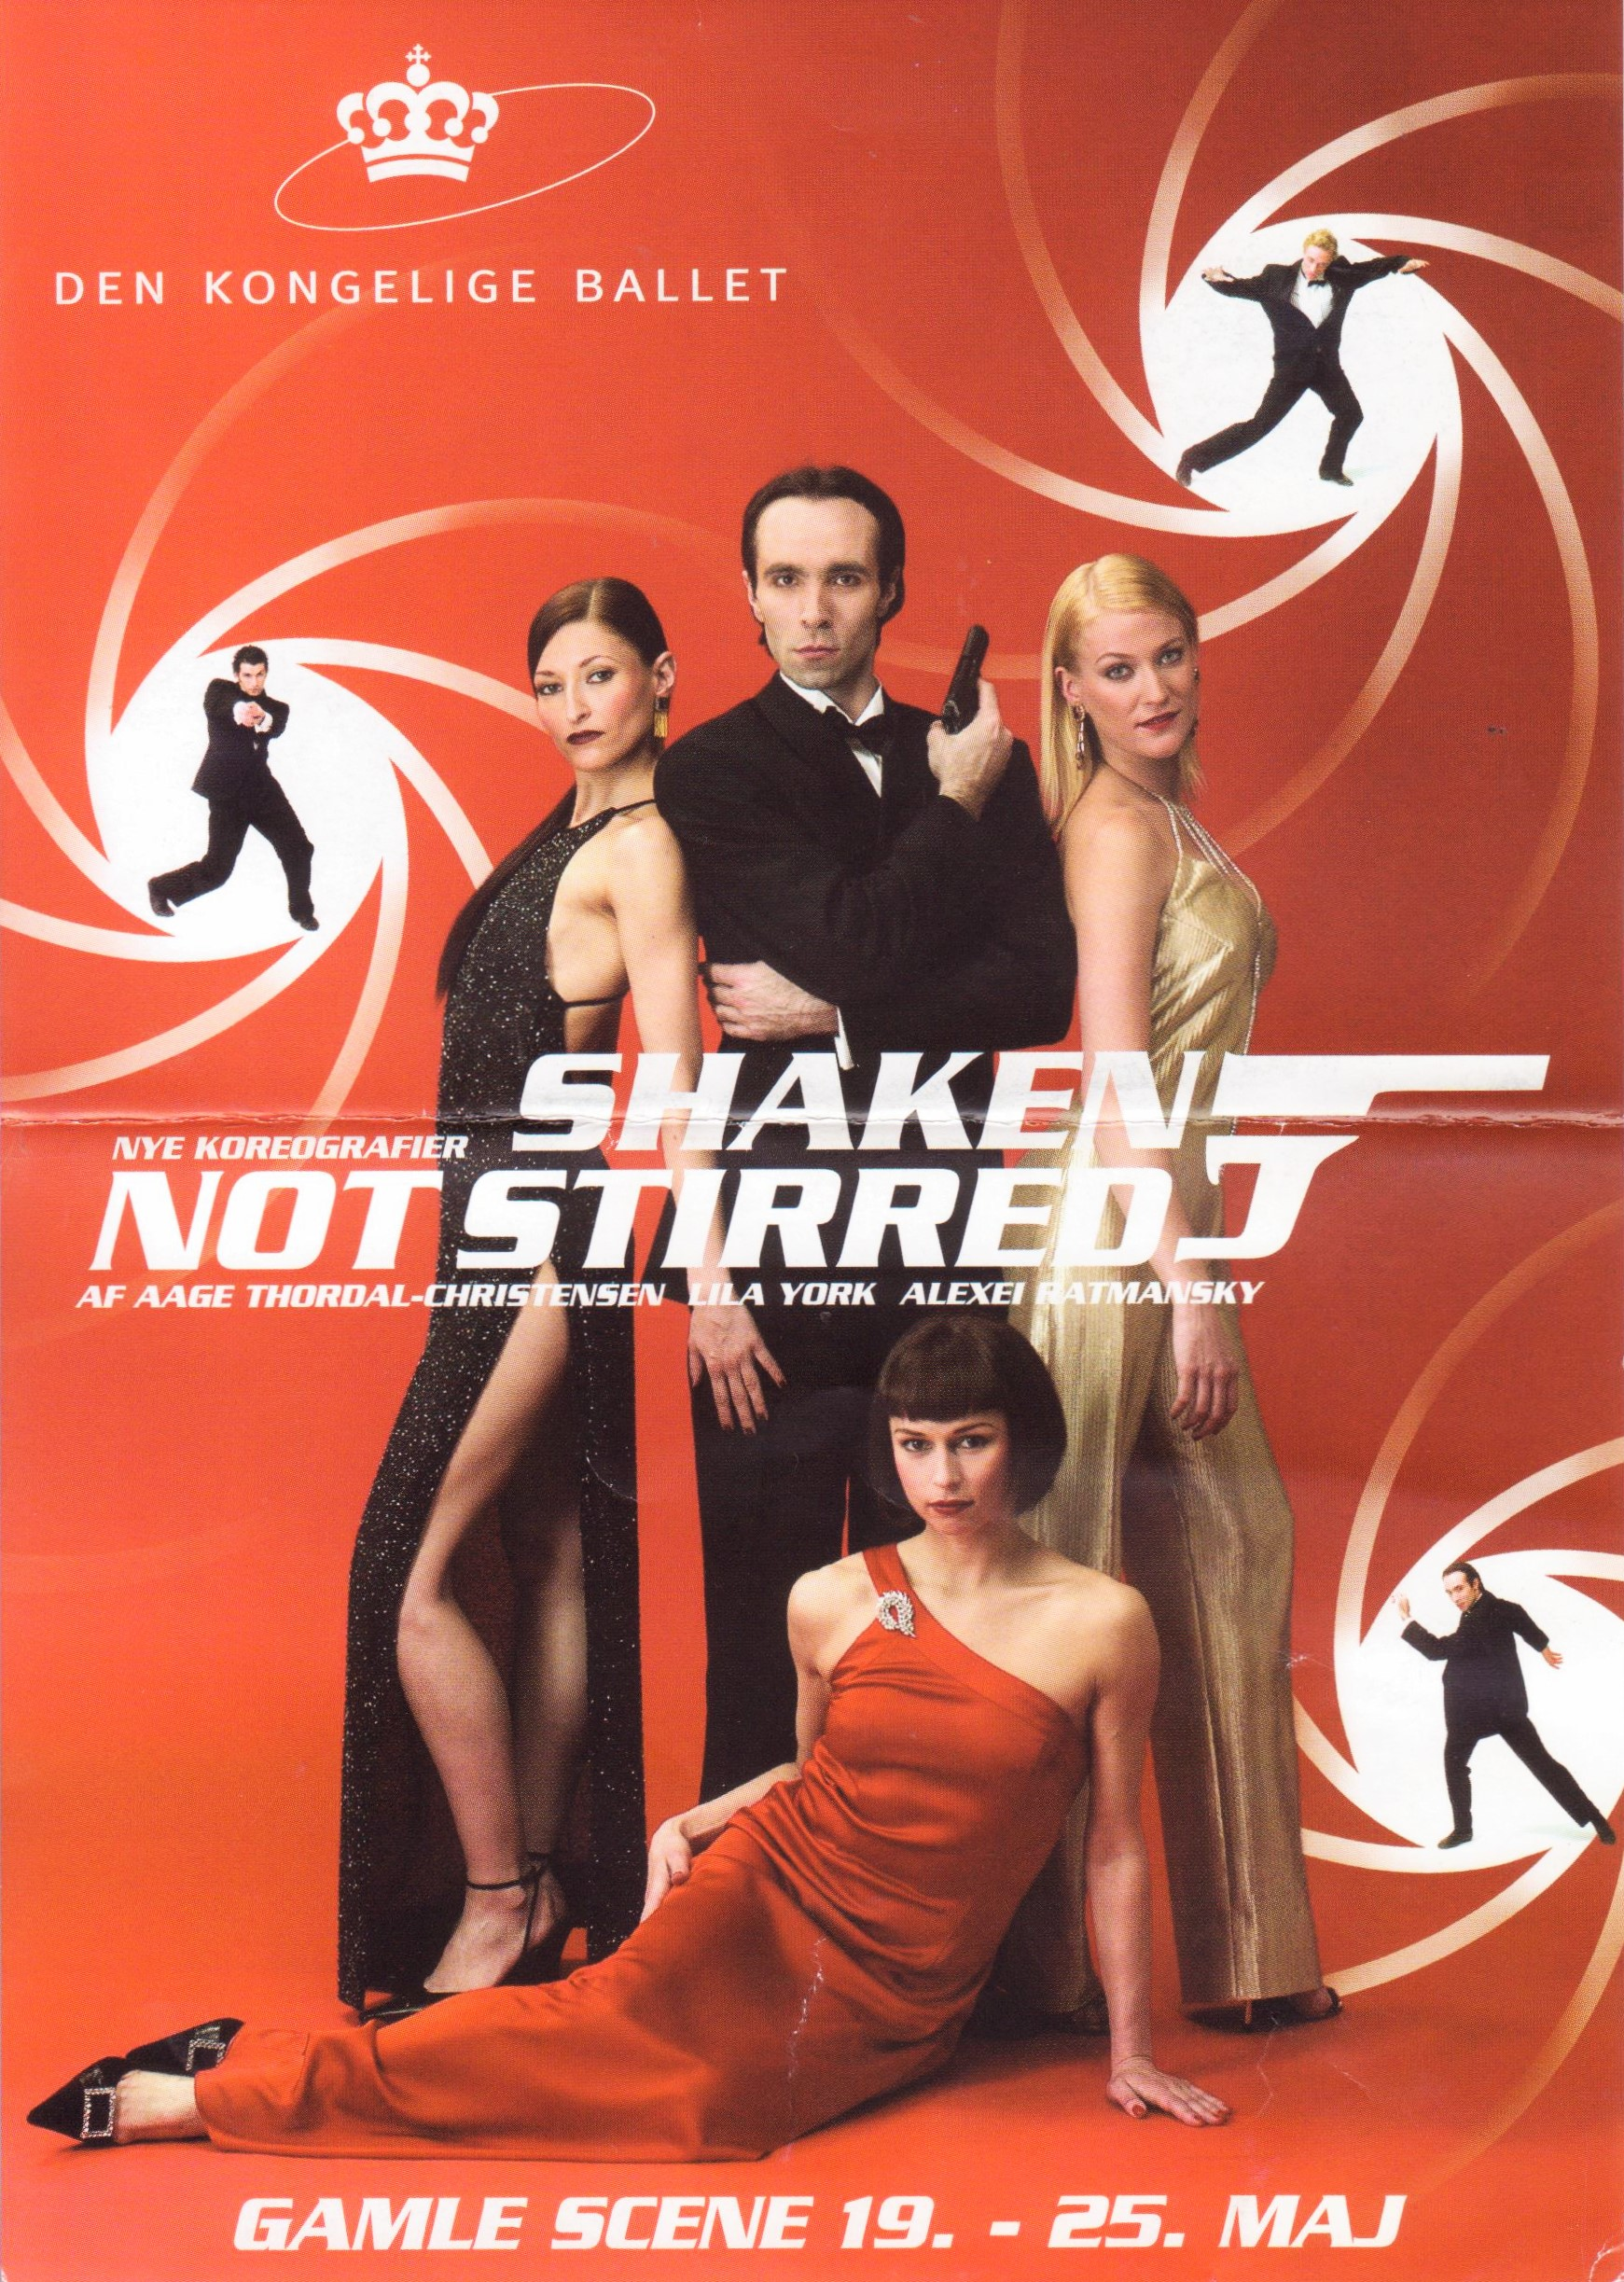 Kgl Ballet Shaken Not Stirred 2001